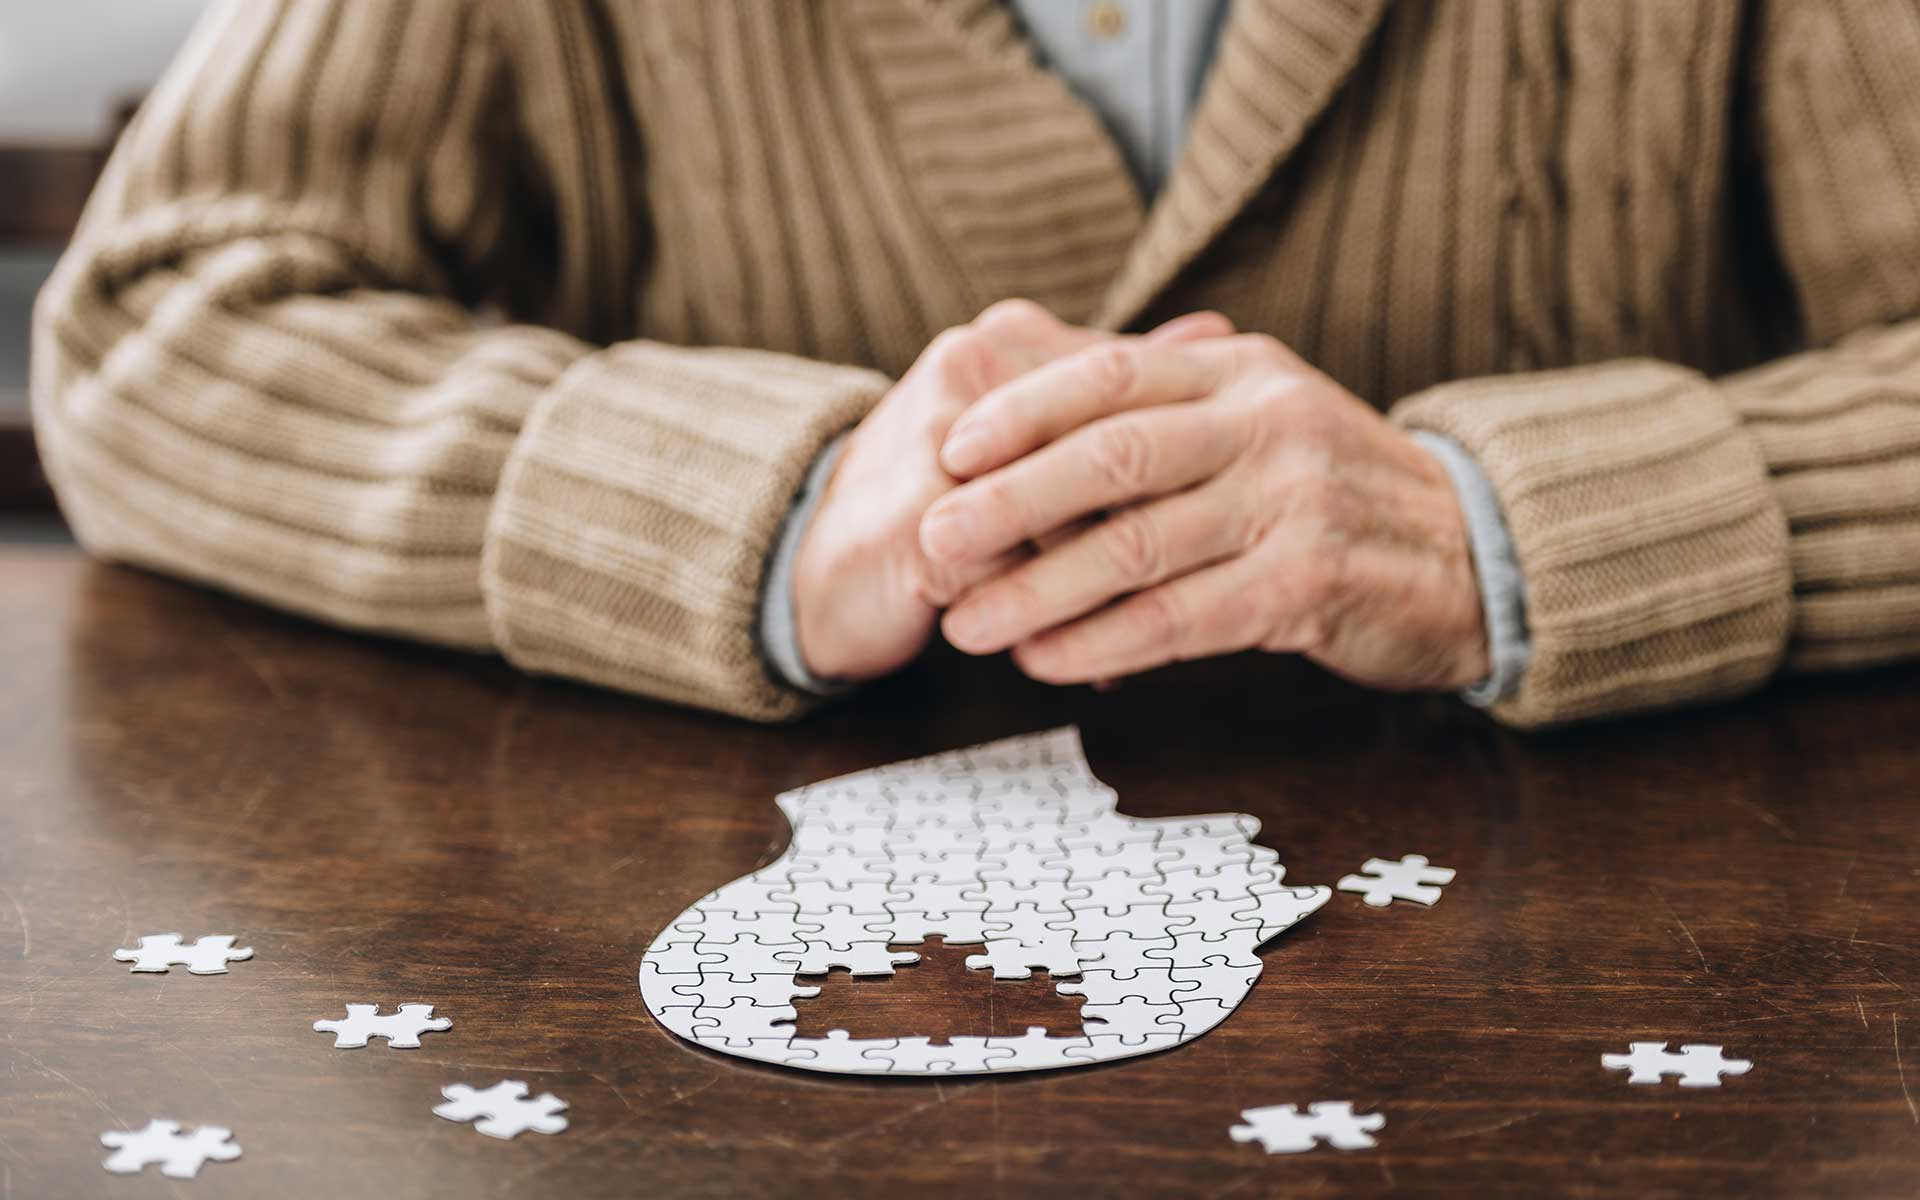 Senior man playing with puzzles